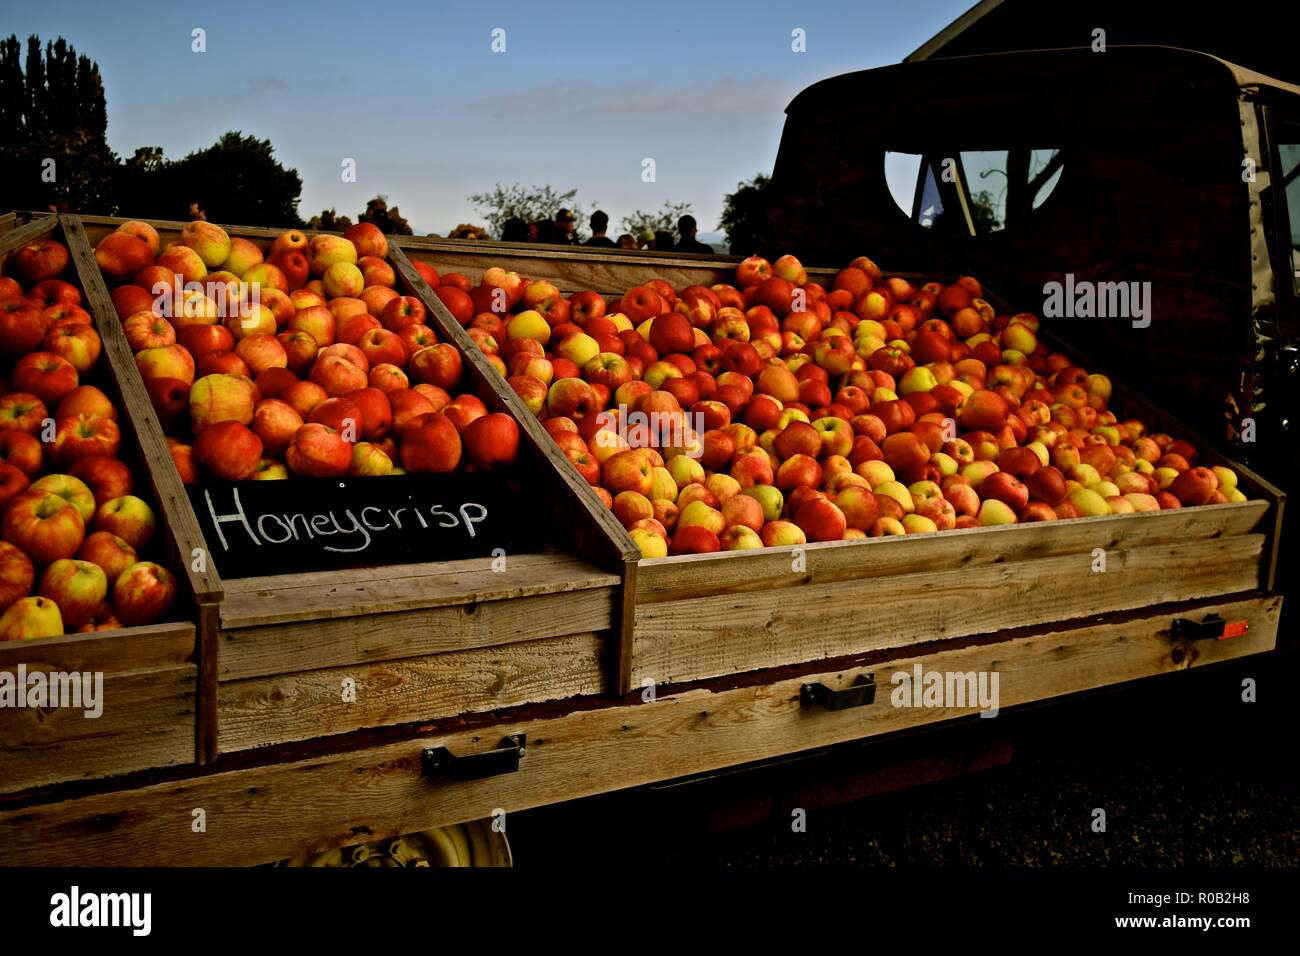 Autumn season is harvest time for apples in Washington state. Farms in Snohomish celebrate by opening up their farms to the public. Stock Photo